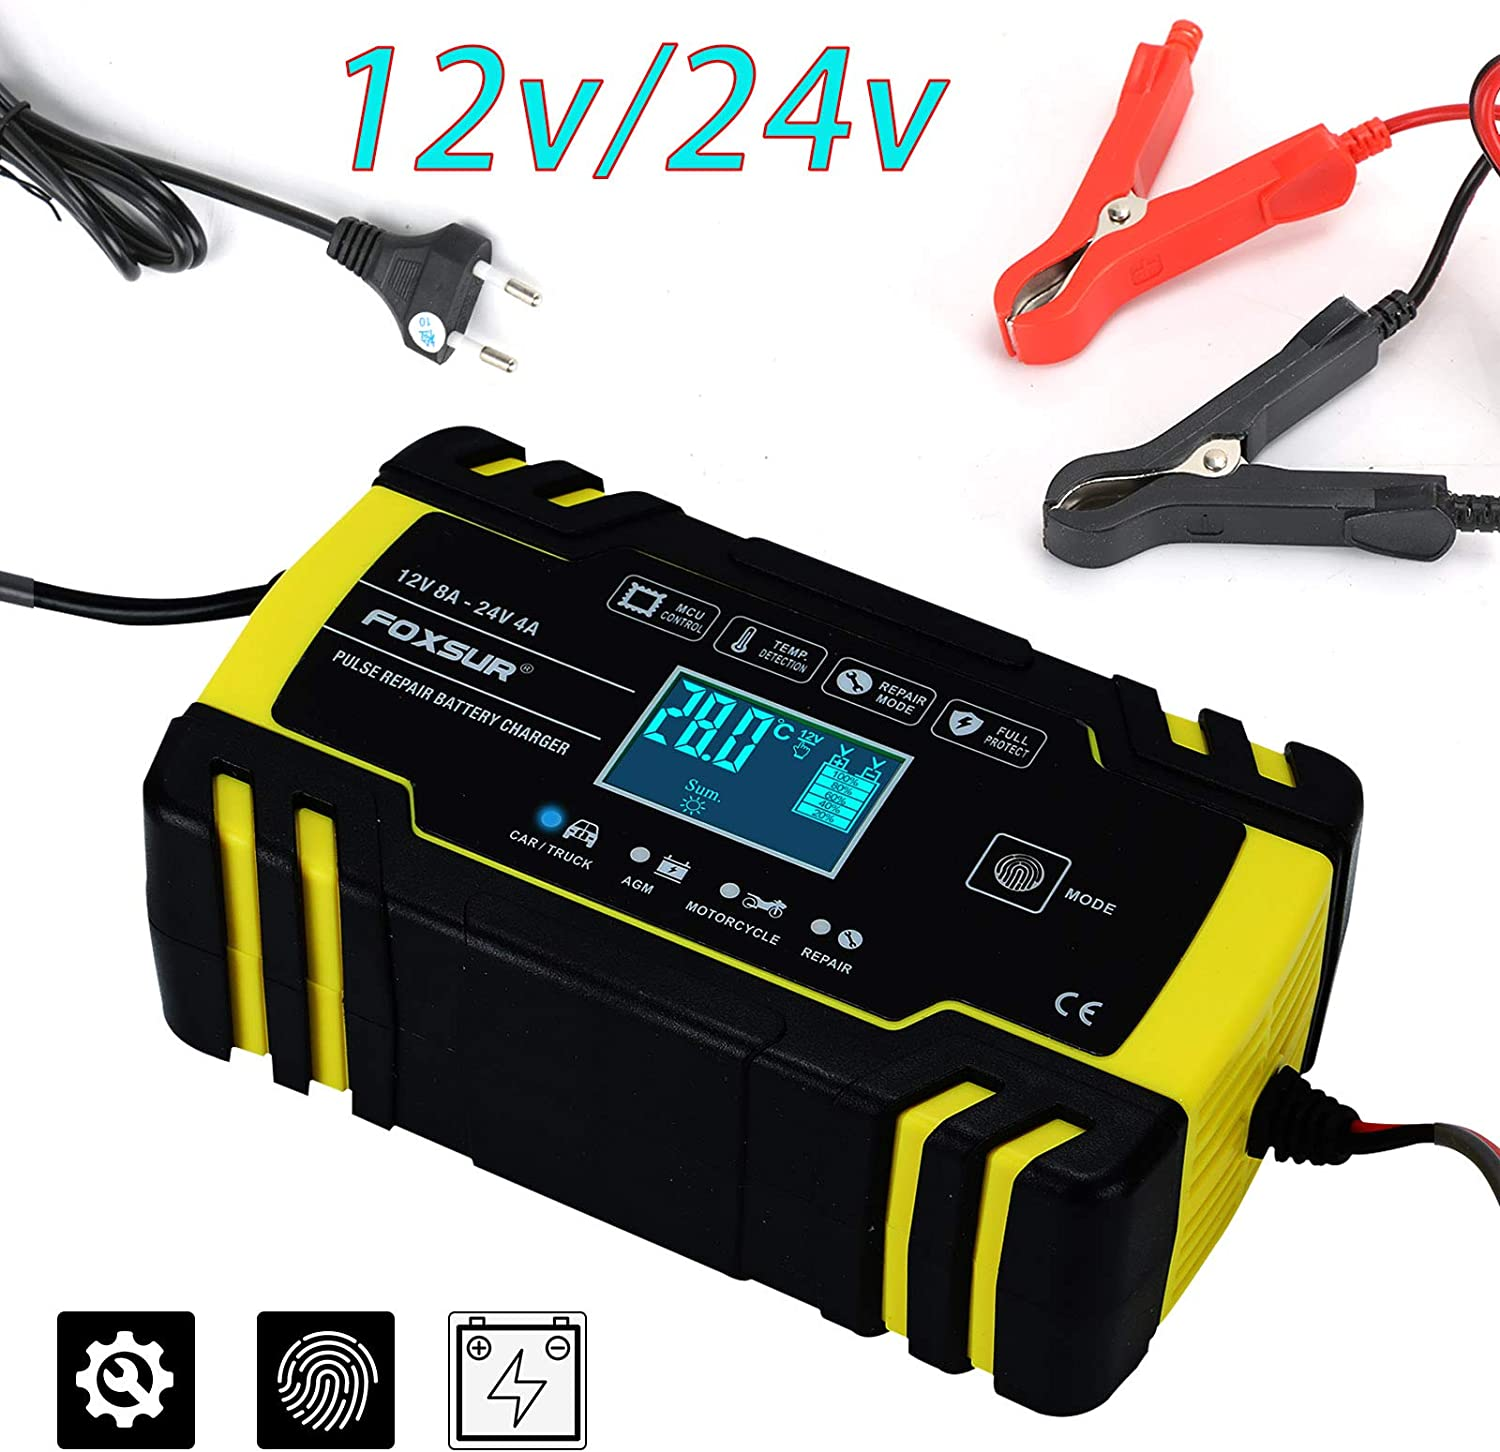 Coldshine Car Battery Charger Maintainer Automatic Intelligent Smart Pulse Repair Starter 12V 24V LCD with LCD Screen for Cars Motorcycles Boat